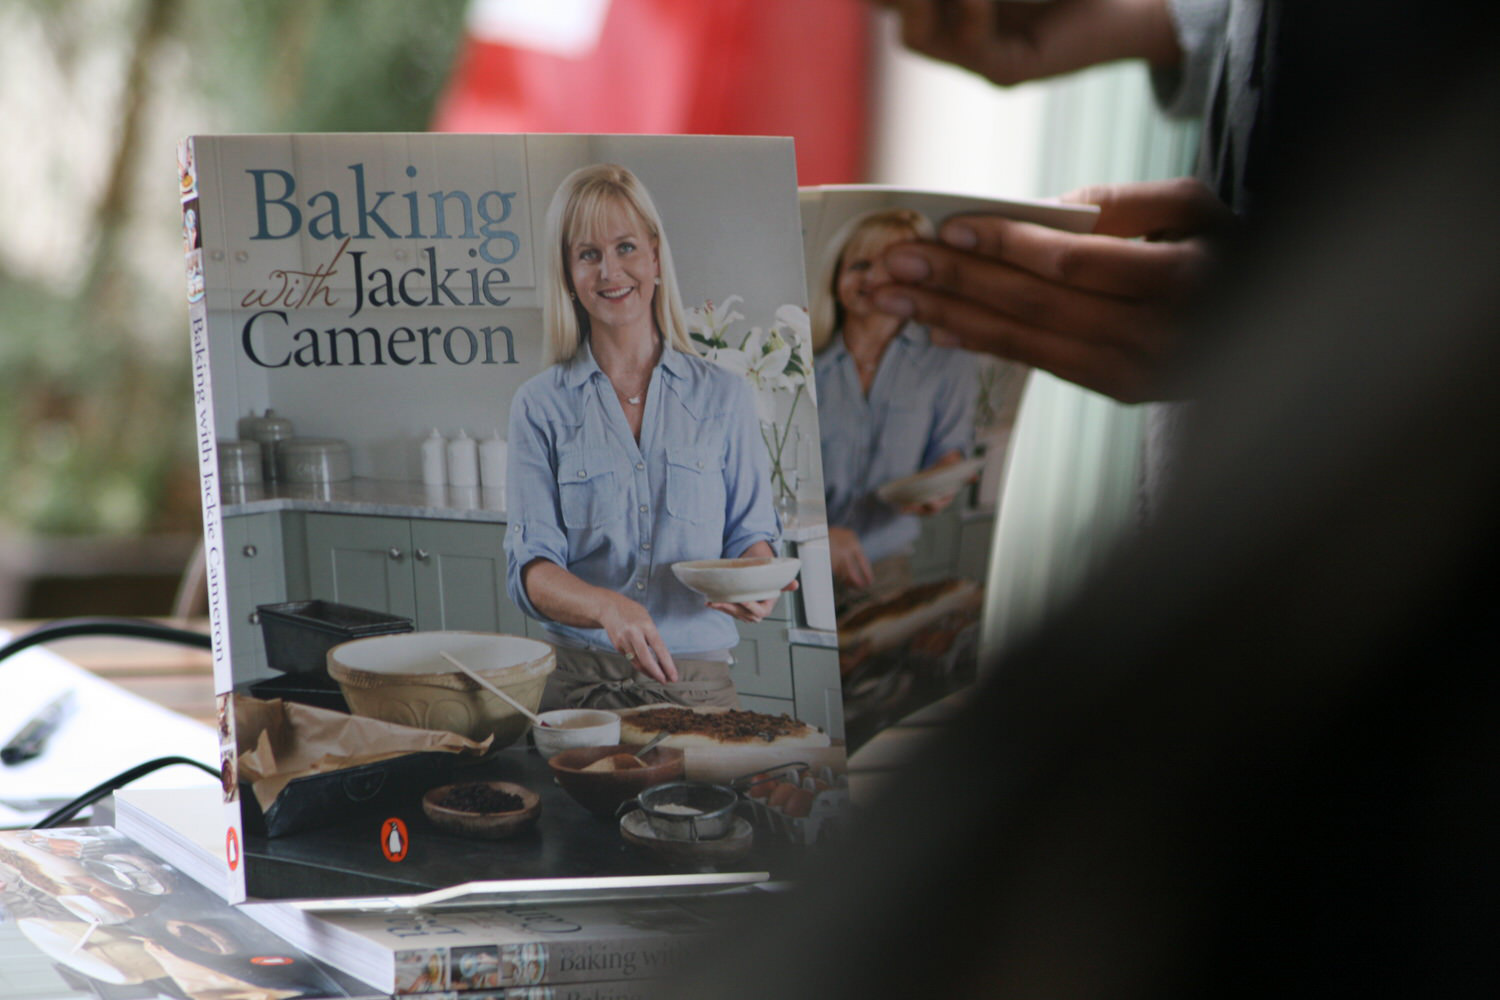 baking-with-jackie-cameron-launch-5.JPG